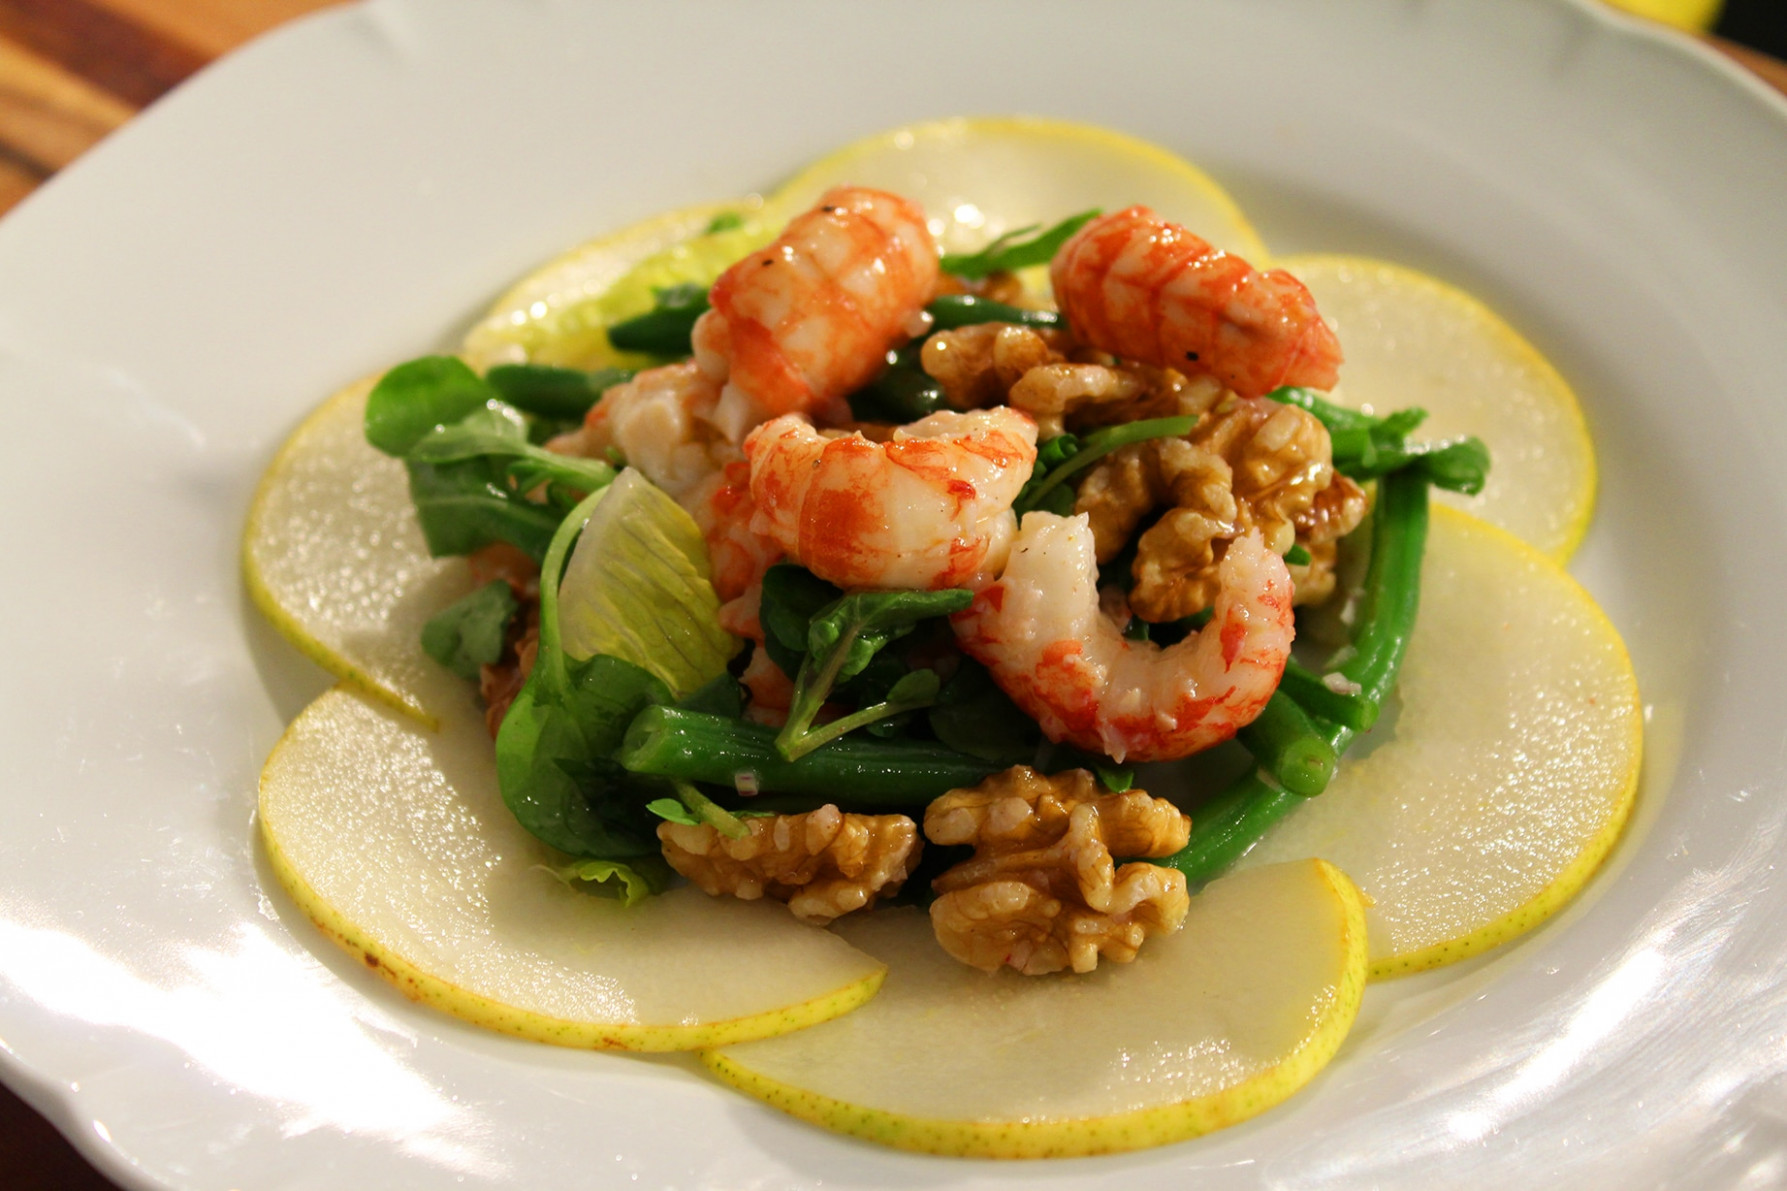 Gourmet yabby salad with pears and walnuts recipe : SBS Food - food recipes with pictures